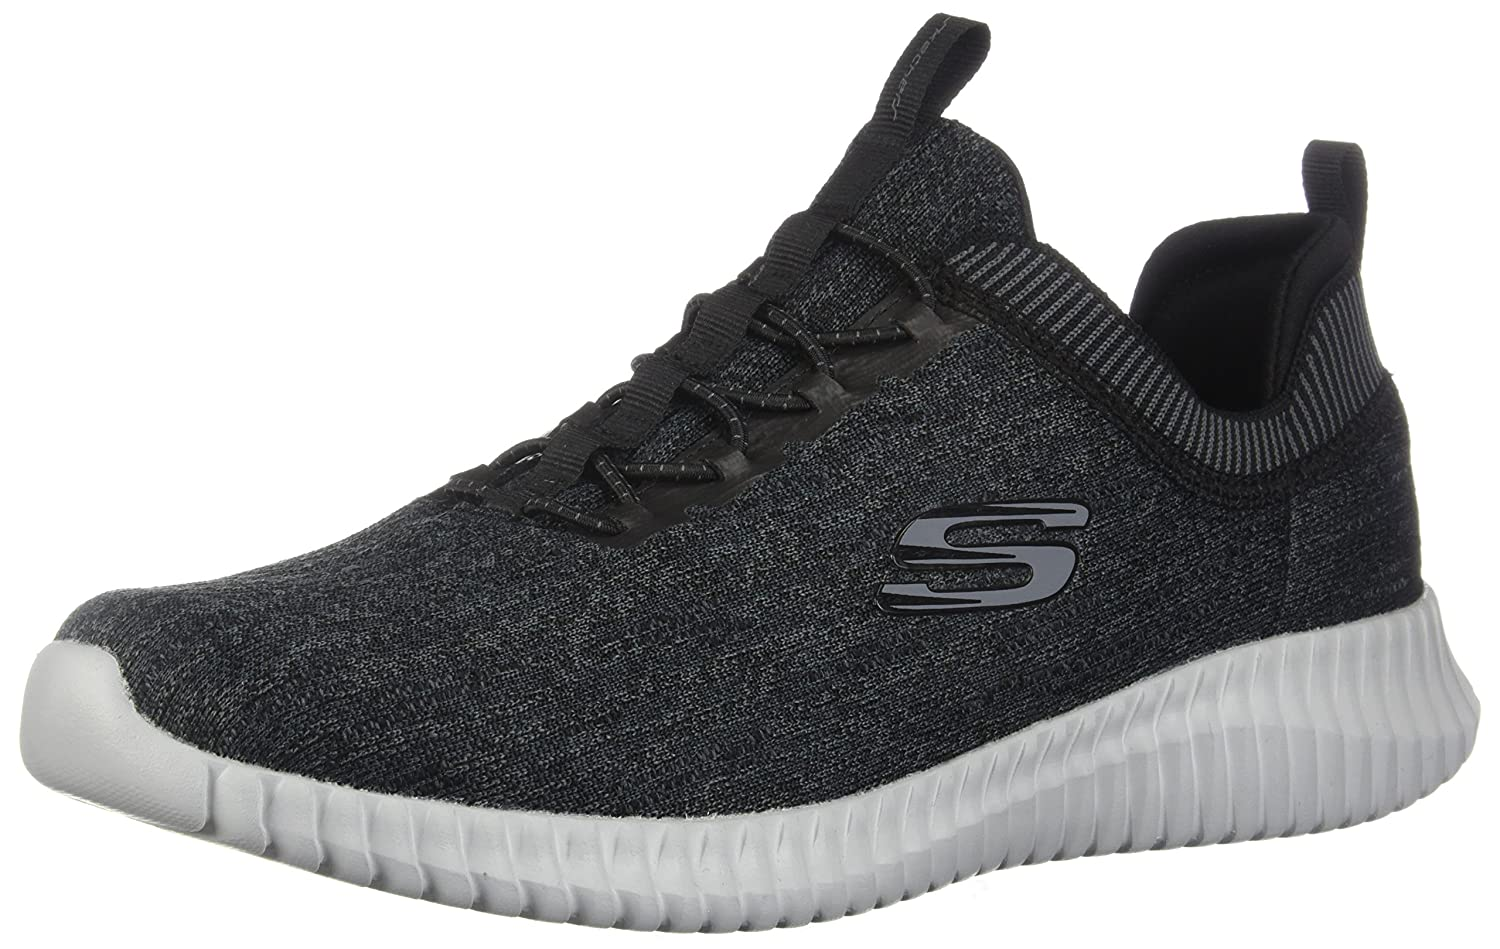 Skechers Sport Men's Elite Flex Hartnell Fashion Sneaker